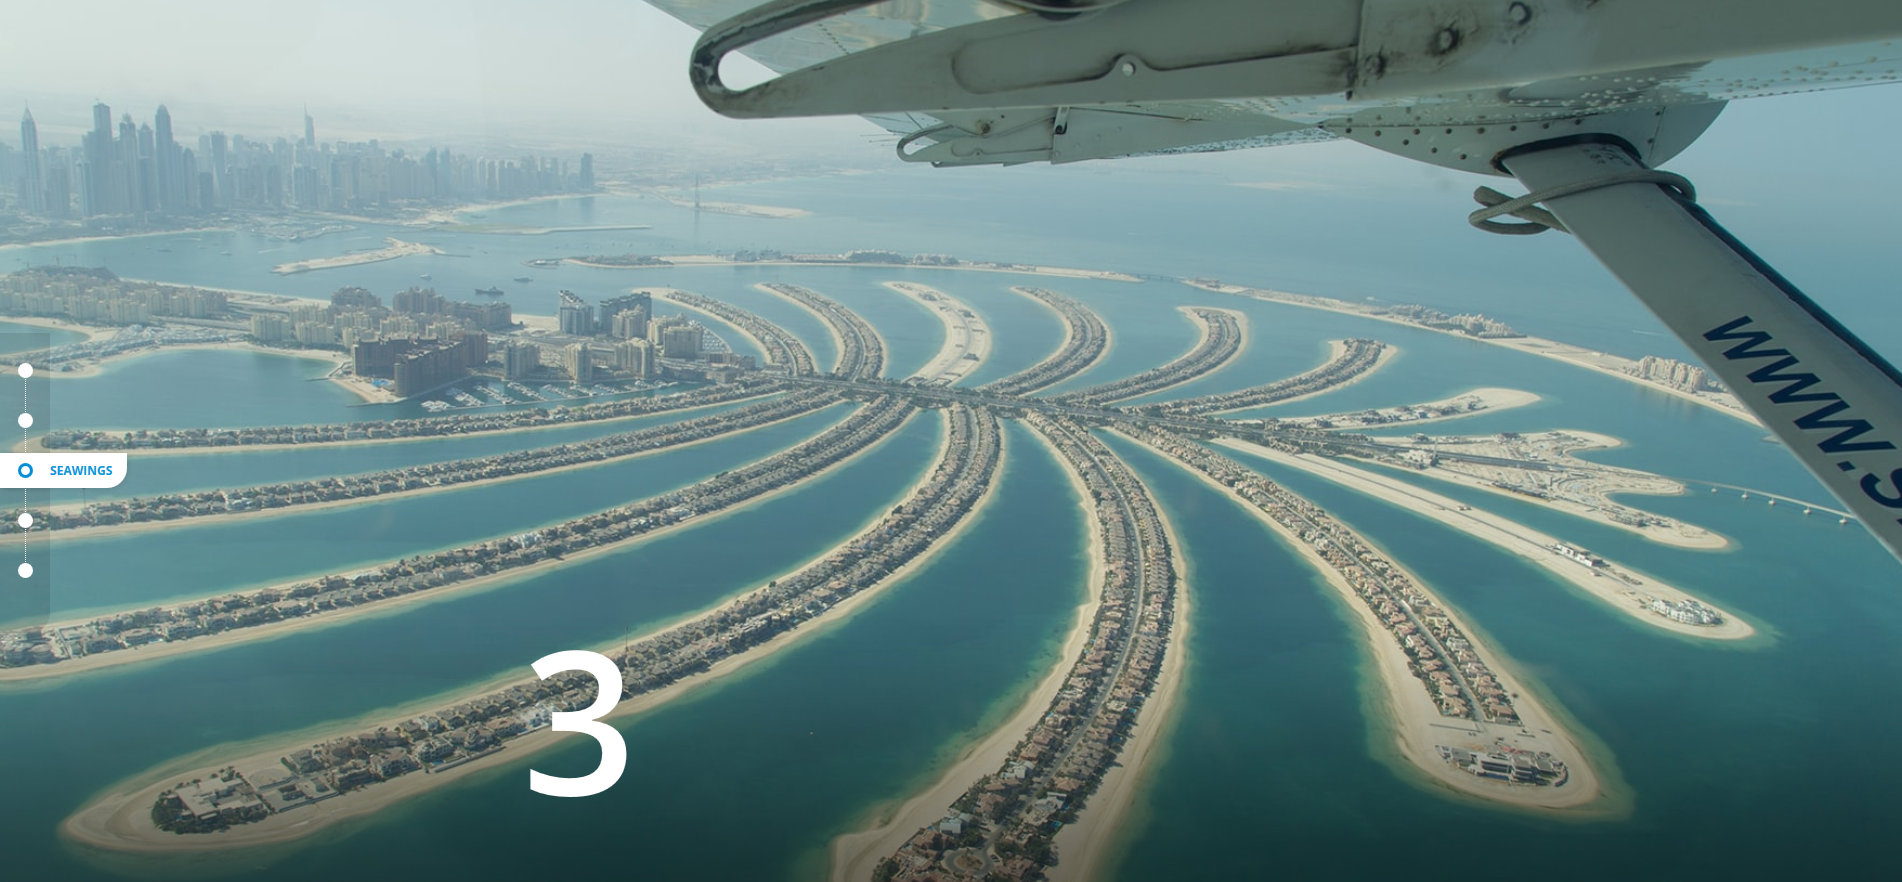 Seawings Glide over the Dubai seas MAGNIFICENT CITY VIEWS FROM THE SKY